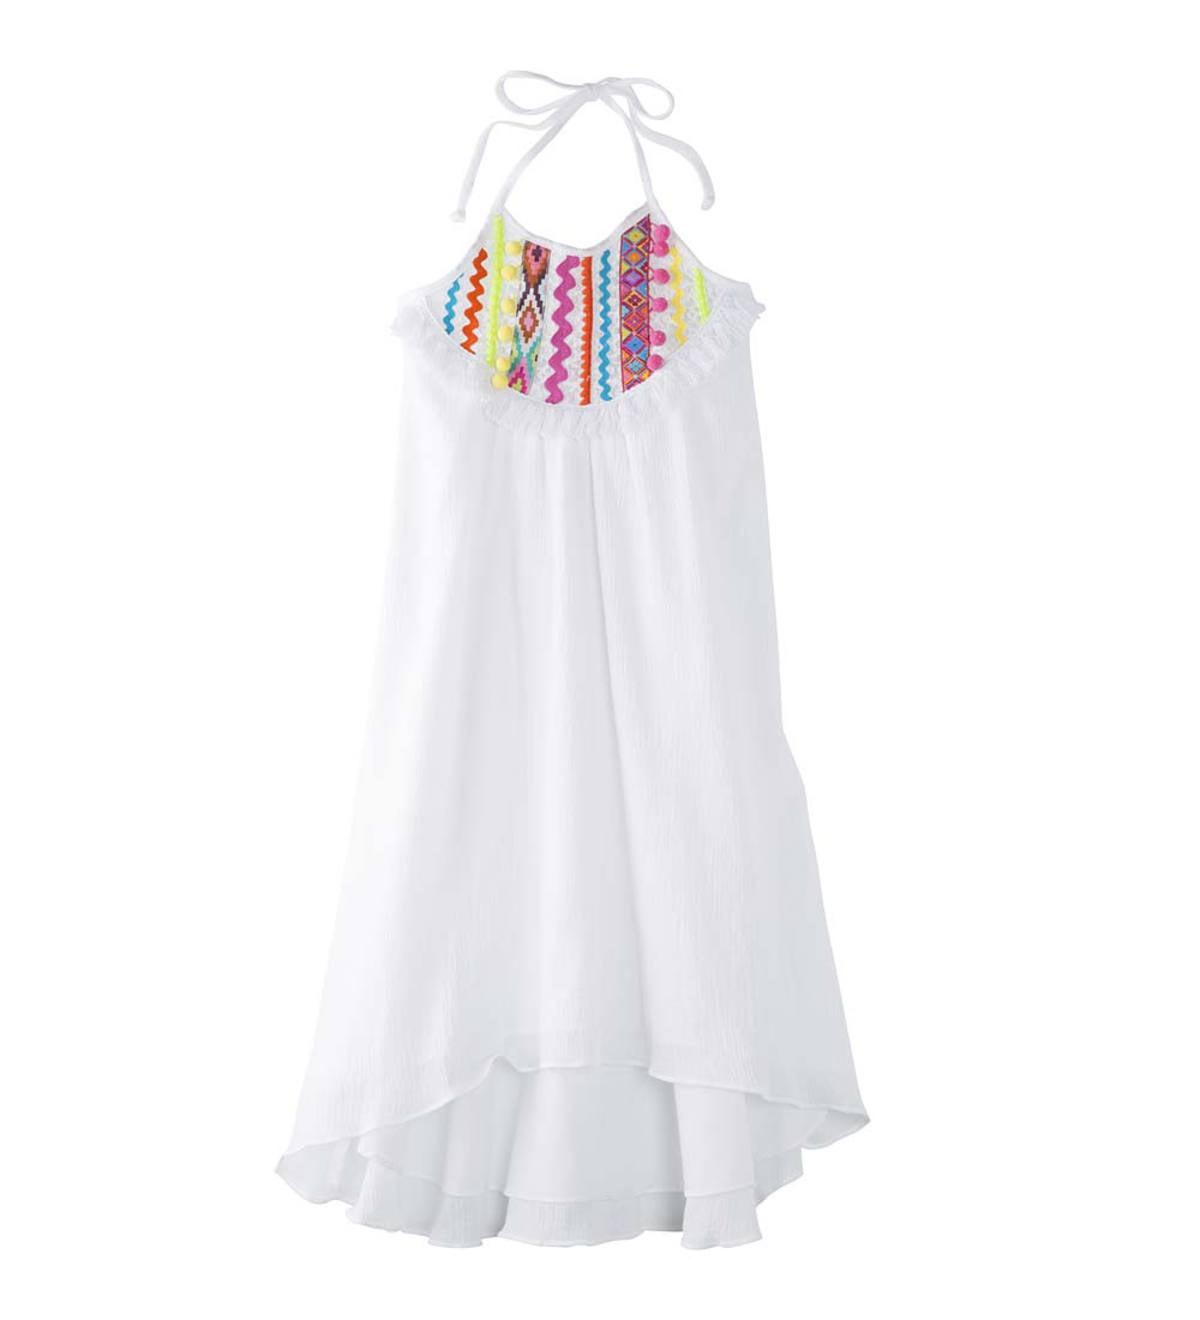 Pom-Pom Halter Dress - MLT - 6